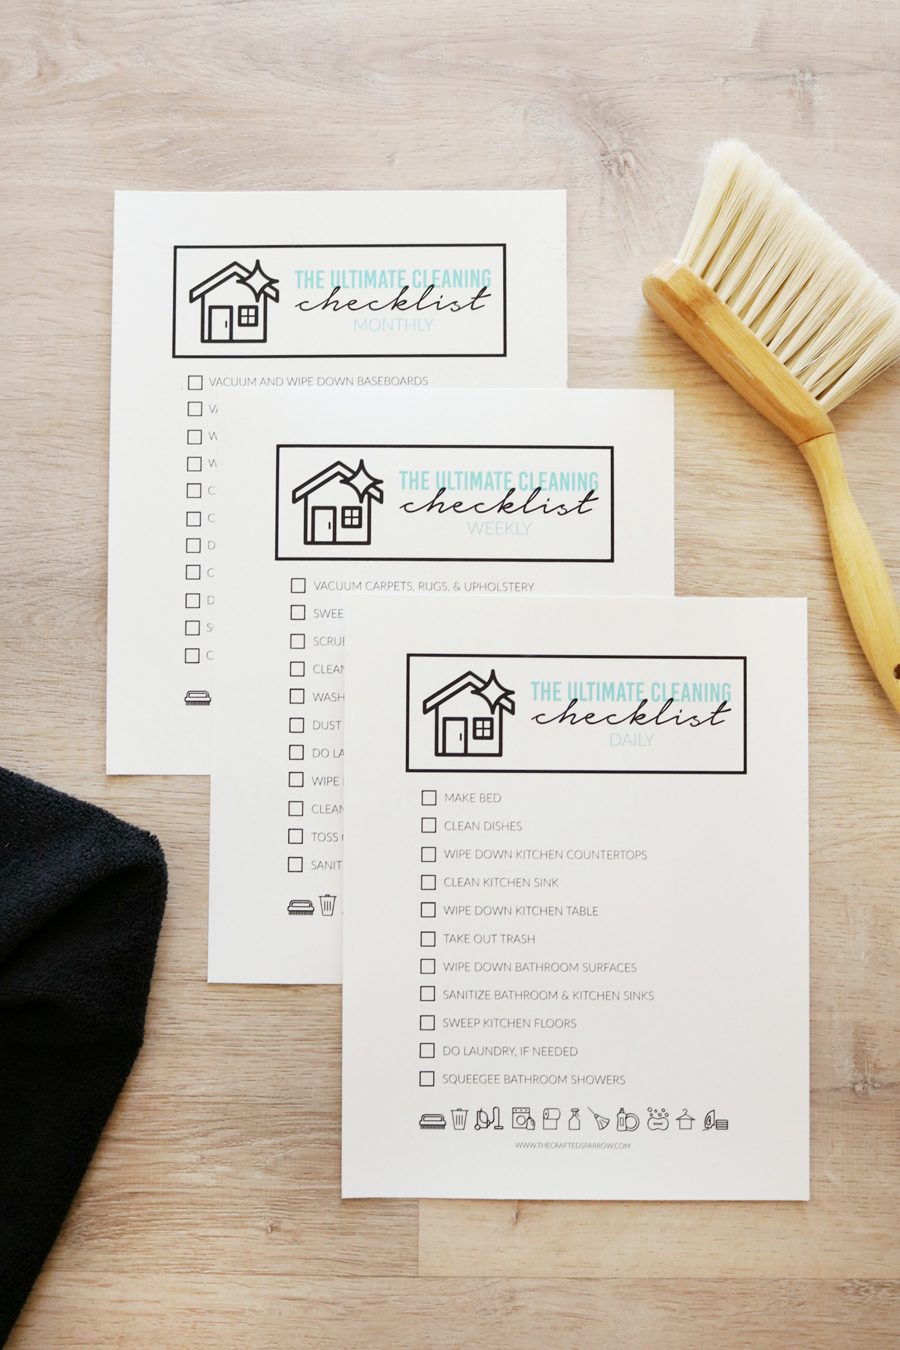 The Ultimate Cleaning Checklist - Free Printable Checklists